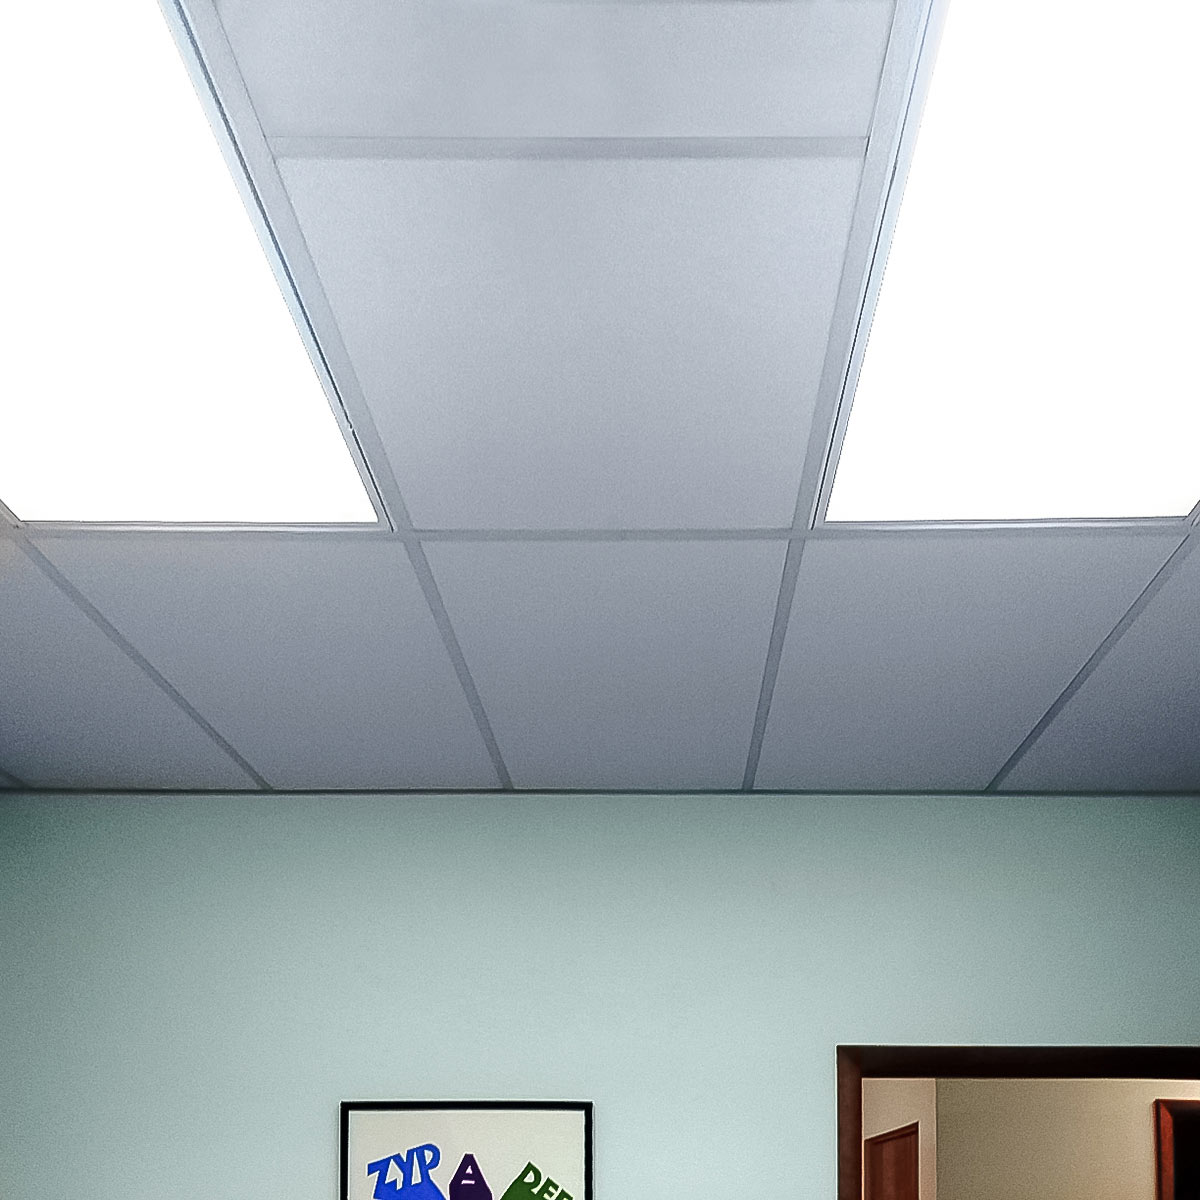 Acoustitherm acoustic ceiling tile acoustical solutions acoustitherm acoustic ceiling tile in a open office dailygadgetfo Image collections